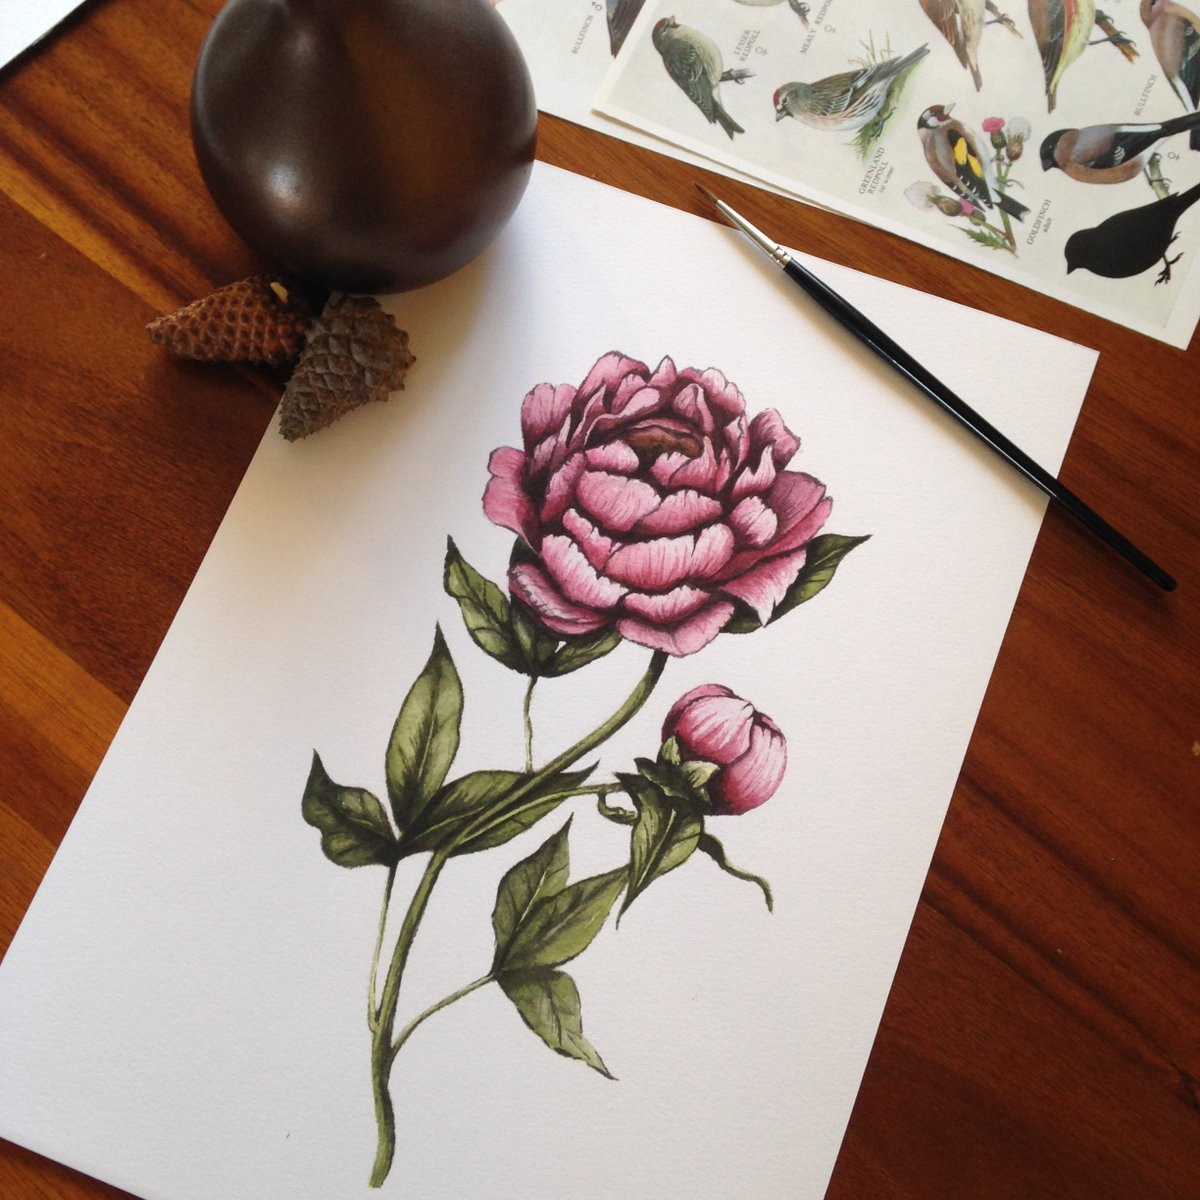 Vintage style peony prints    http:// ow.ly/gGHX30cLY52  &nbsp;    #handmadehour #etsychaching #etsyseller #etsy #art #peony<br>http://pic.twitter.com/9oR3gqDjfk